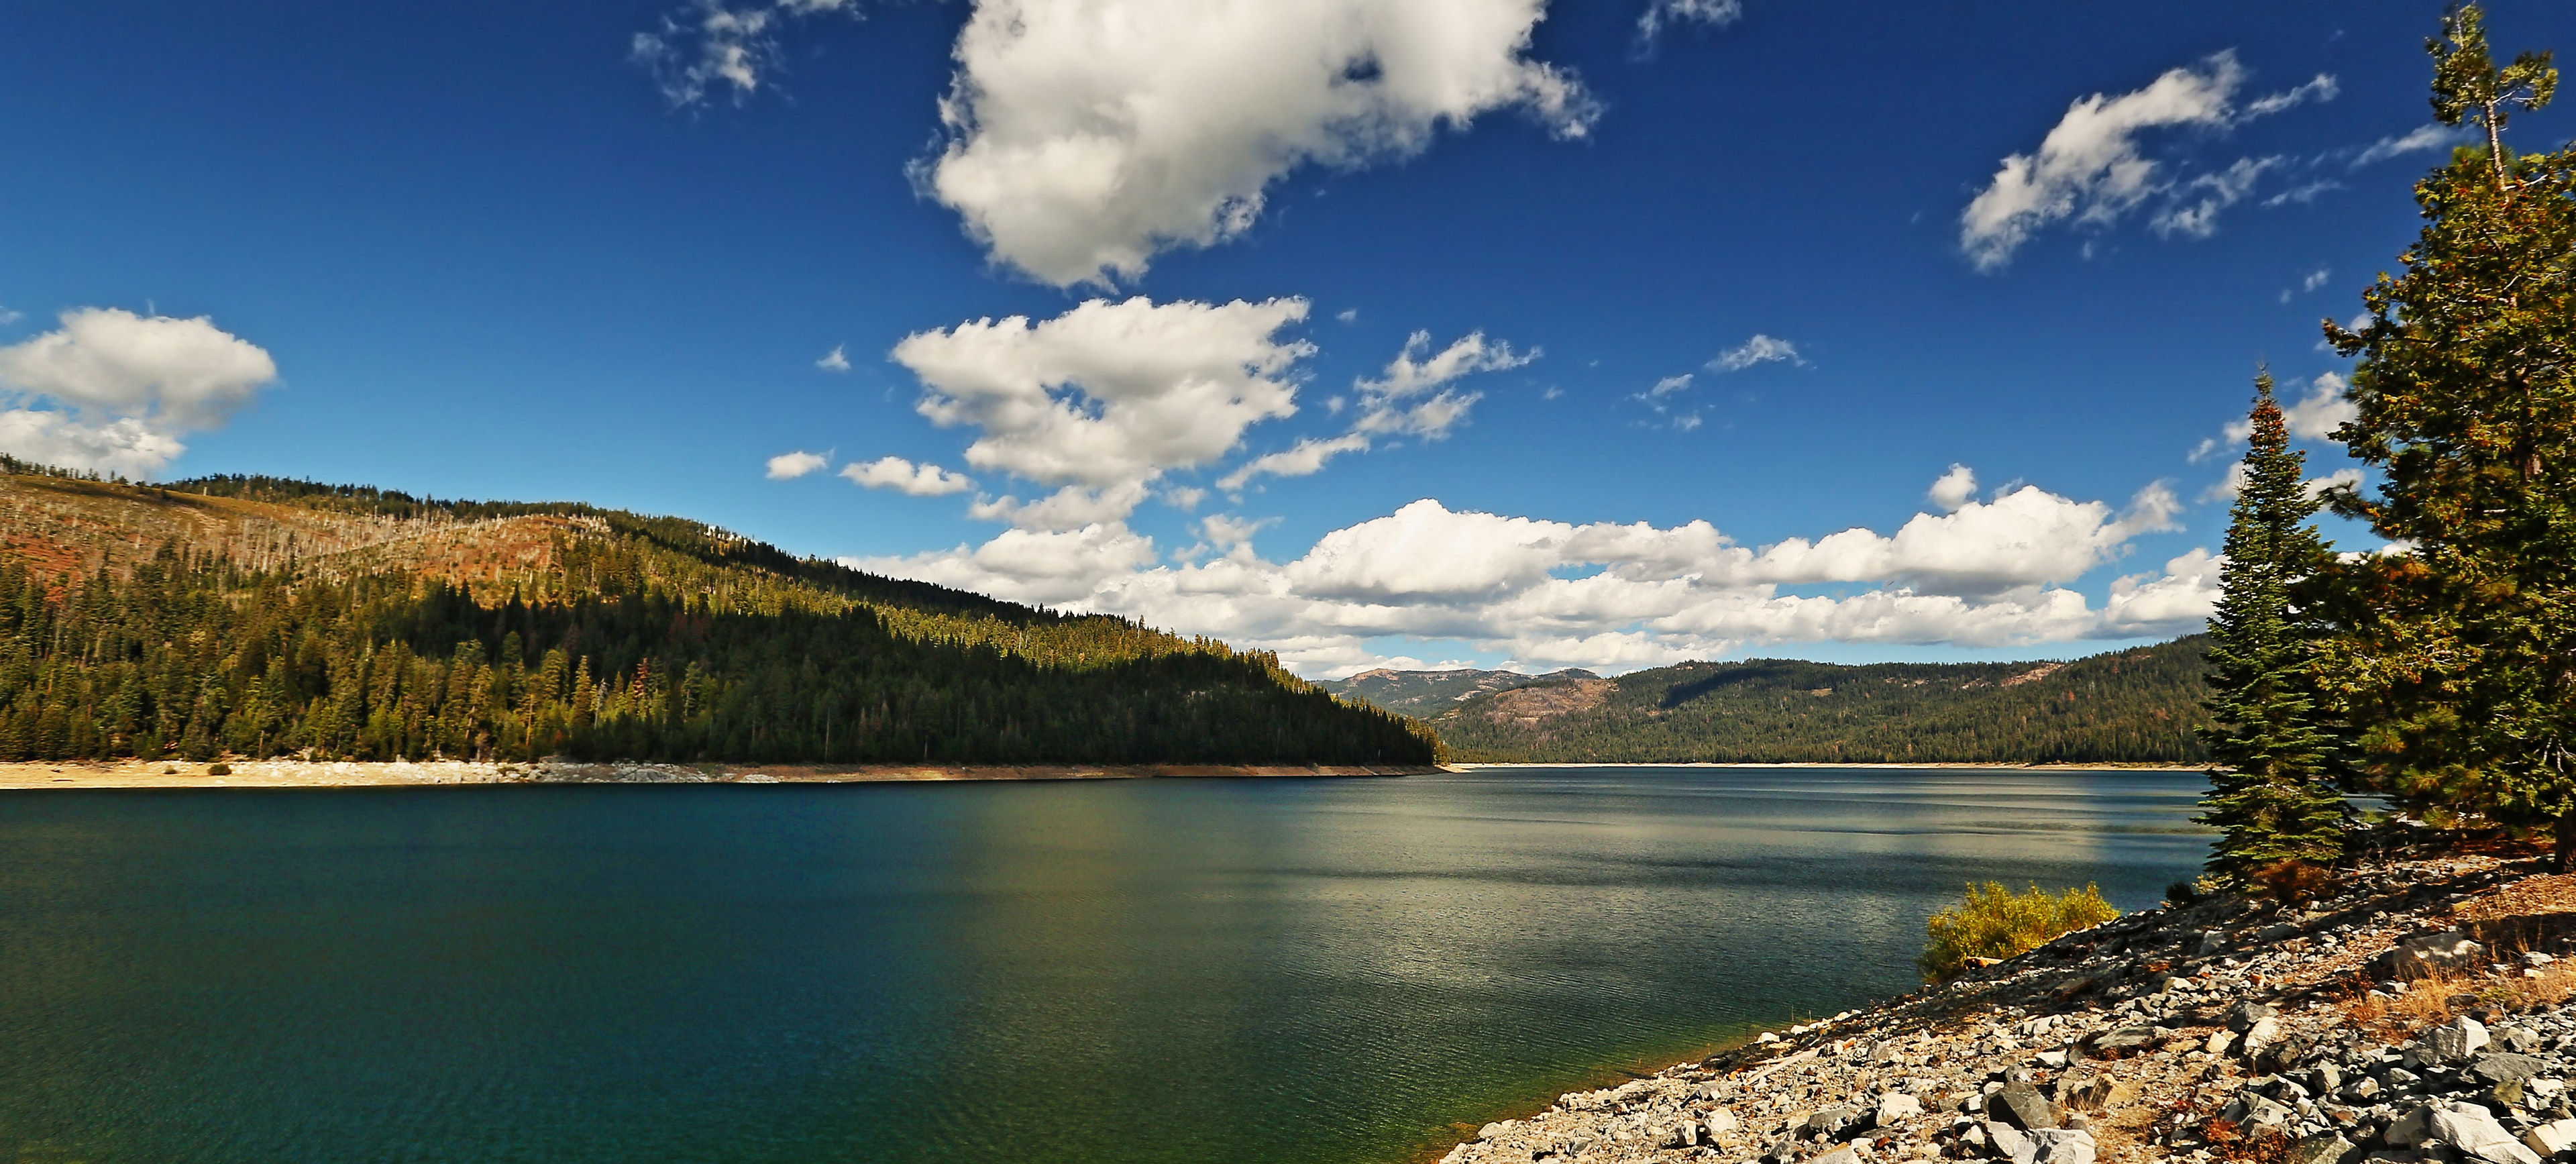 A photo of French Meadows Reservoir